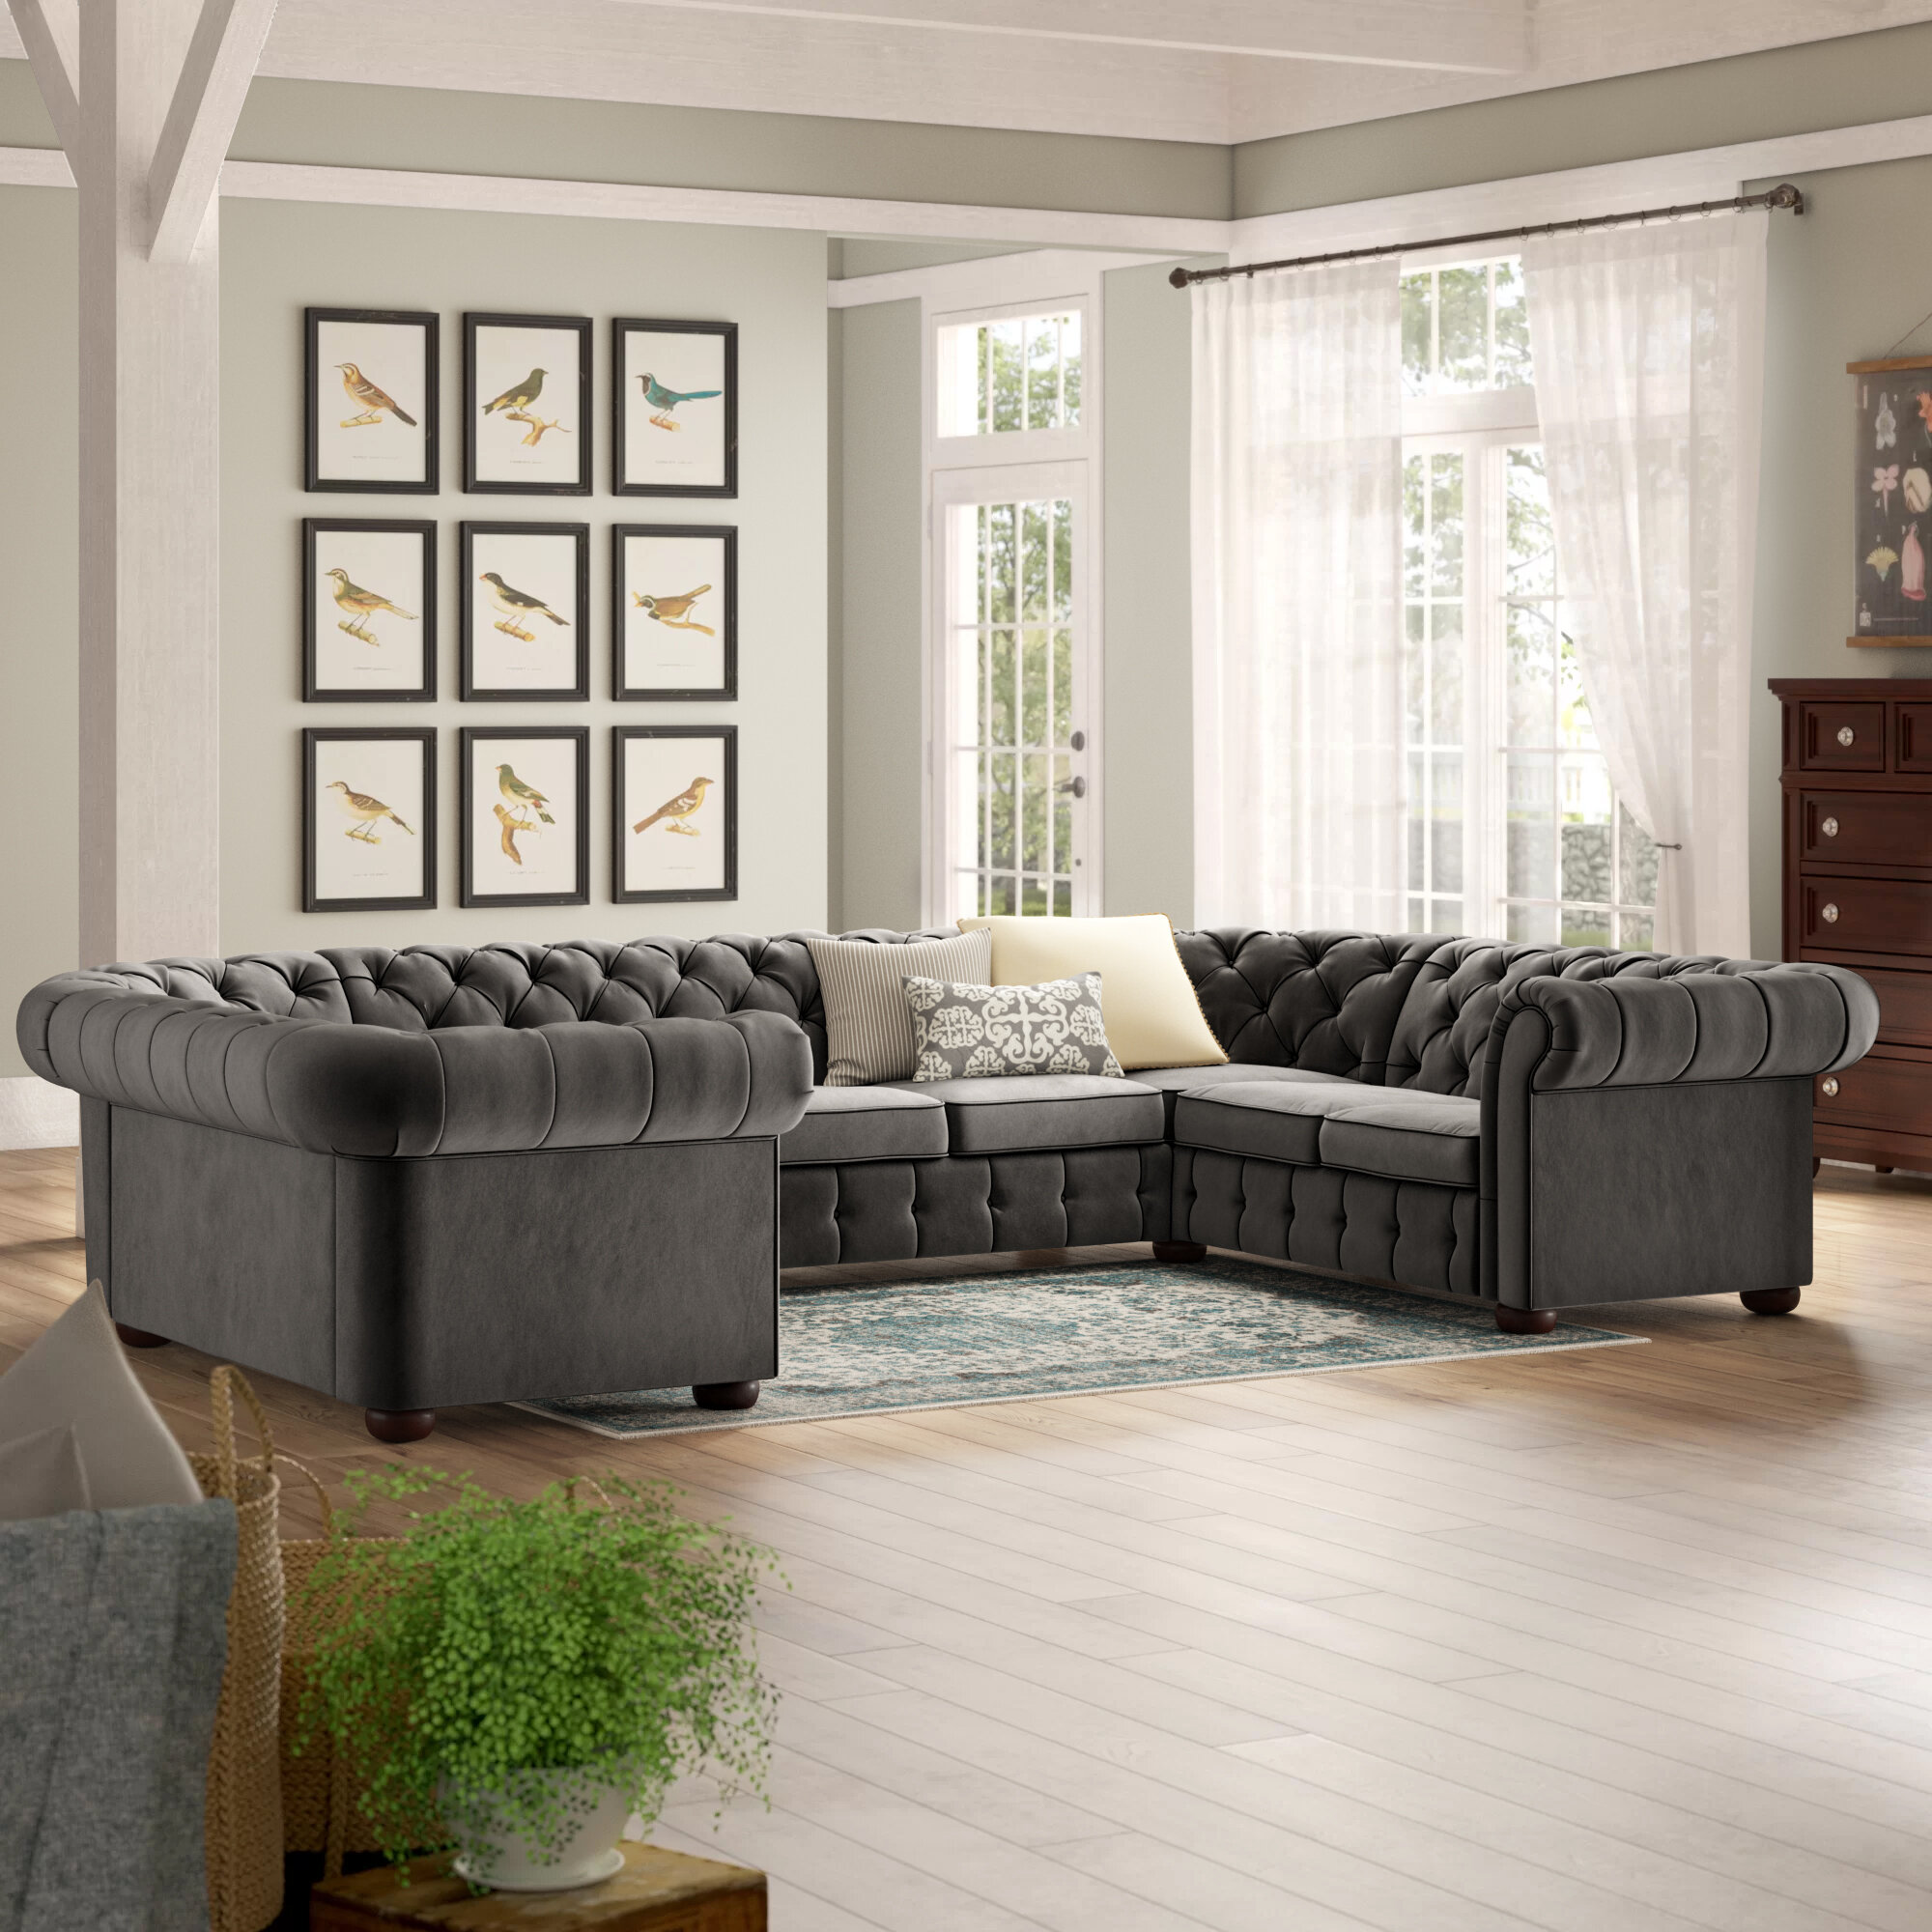 Kelly Clarkson Home Bainsby 142 Right Hand Facing Sectional Birch Lane